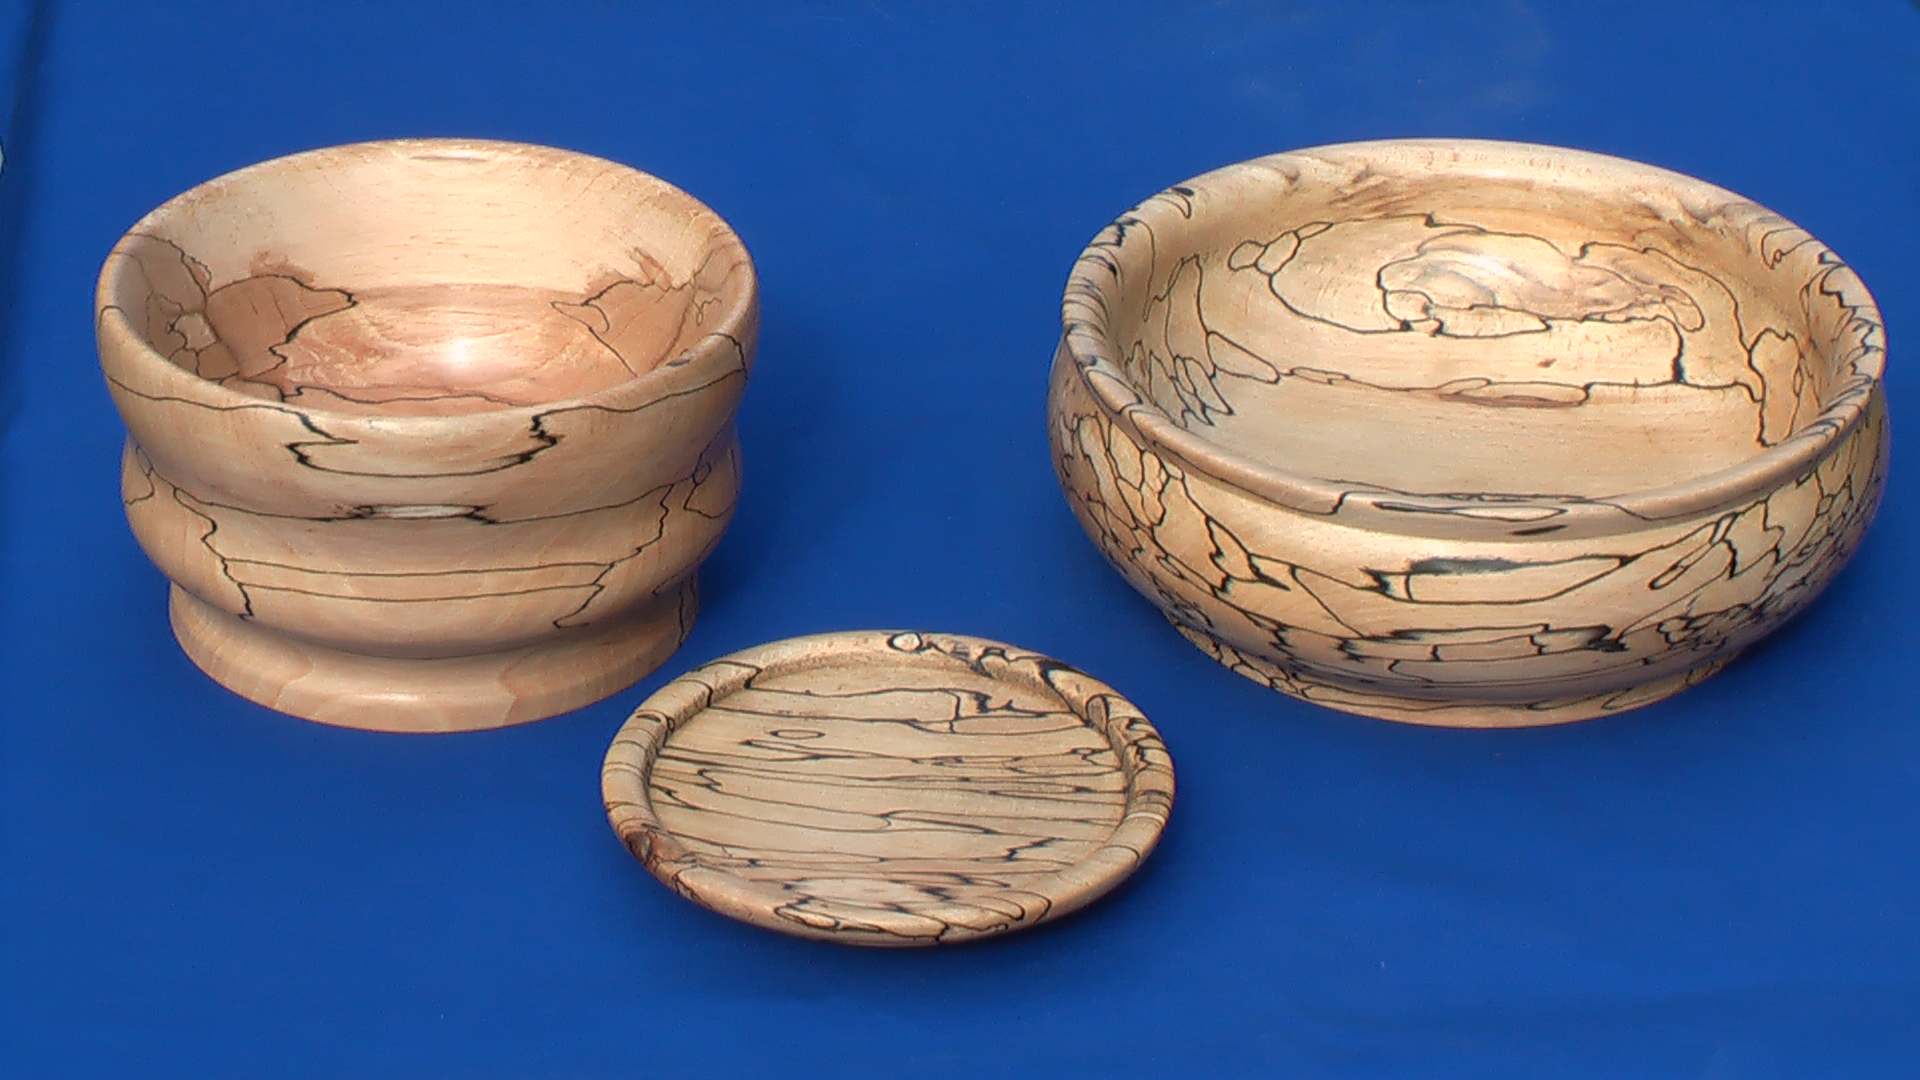 Bowls.and.Vases/IMGA0013.JPG